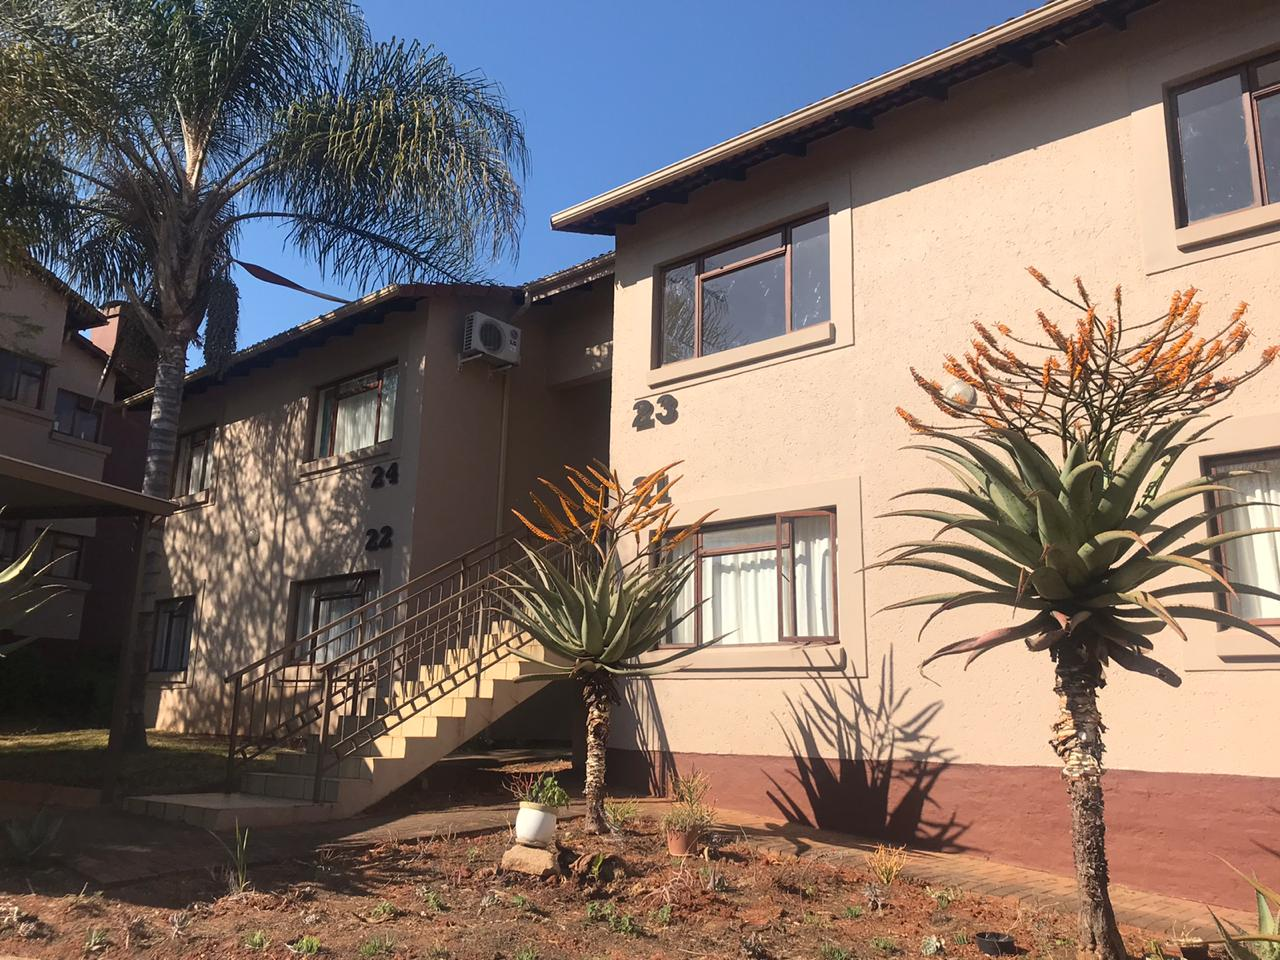 2 Bedroom Apartment For Sale in White River Ext 18 - Unit 23